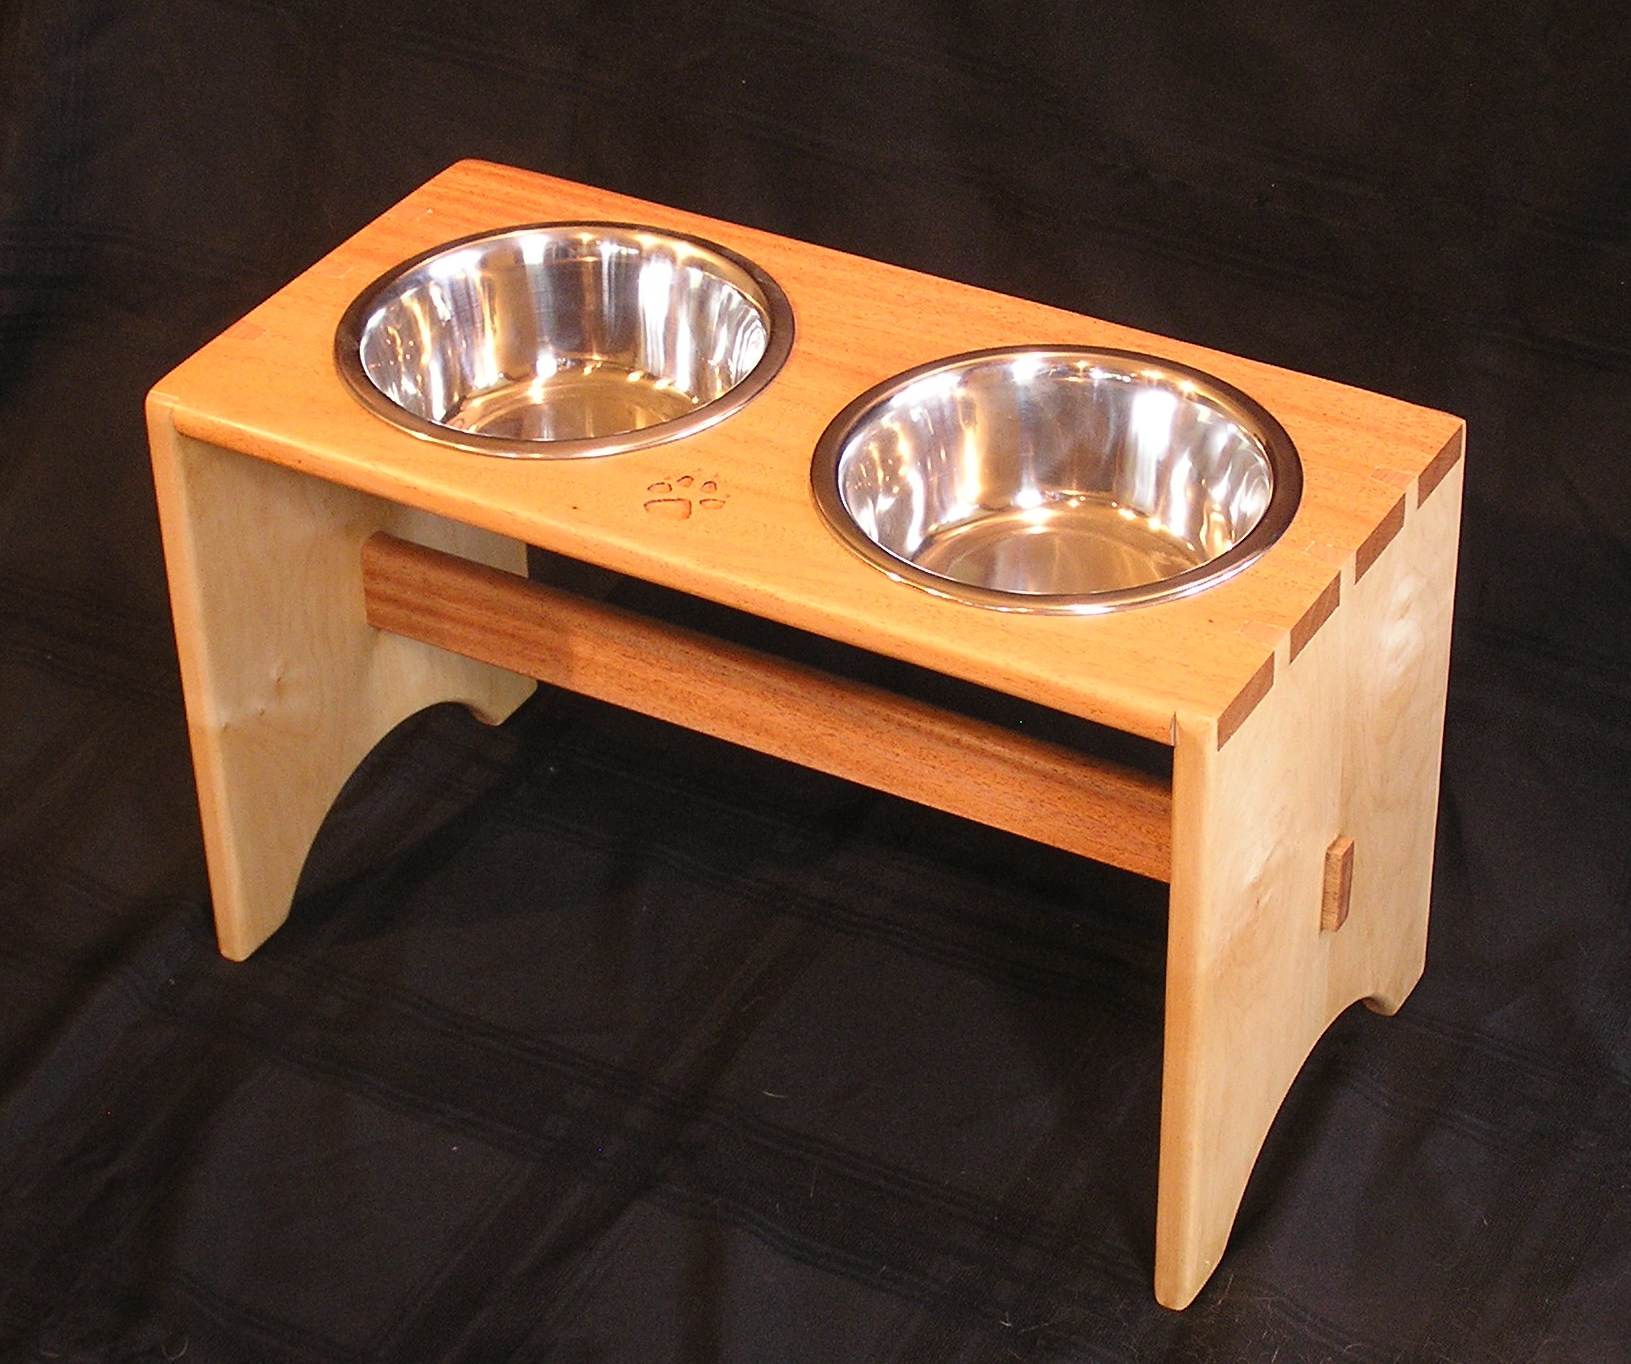 Dog Bowl Wood: Mahogany, Maple Joinery: Dovetail- wedged through mortise and tenon - carve foot Print I build this for a auction raising money for animal treatment.